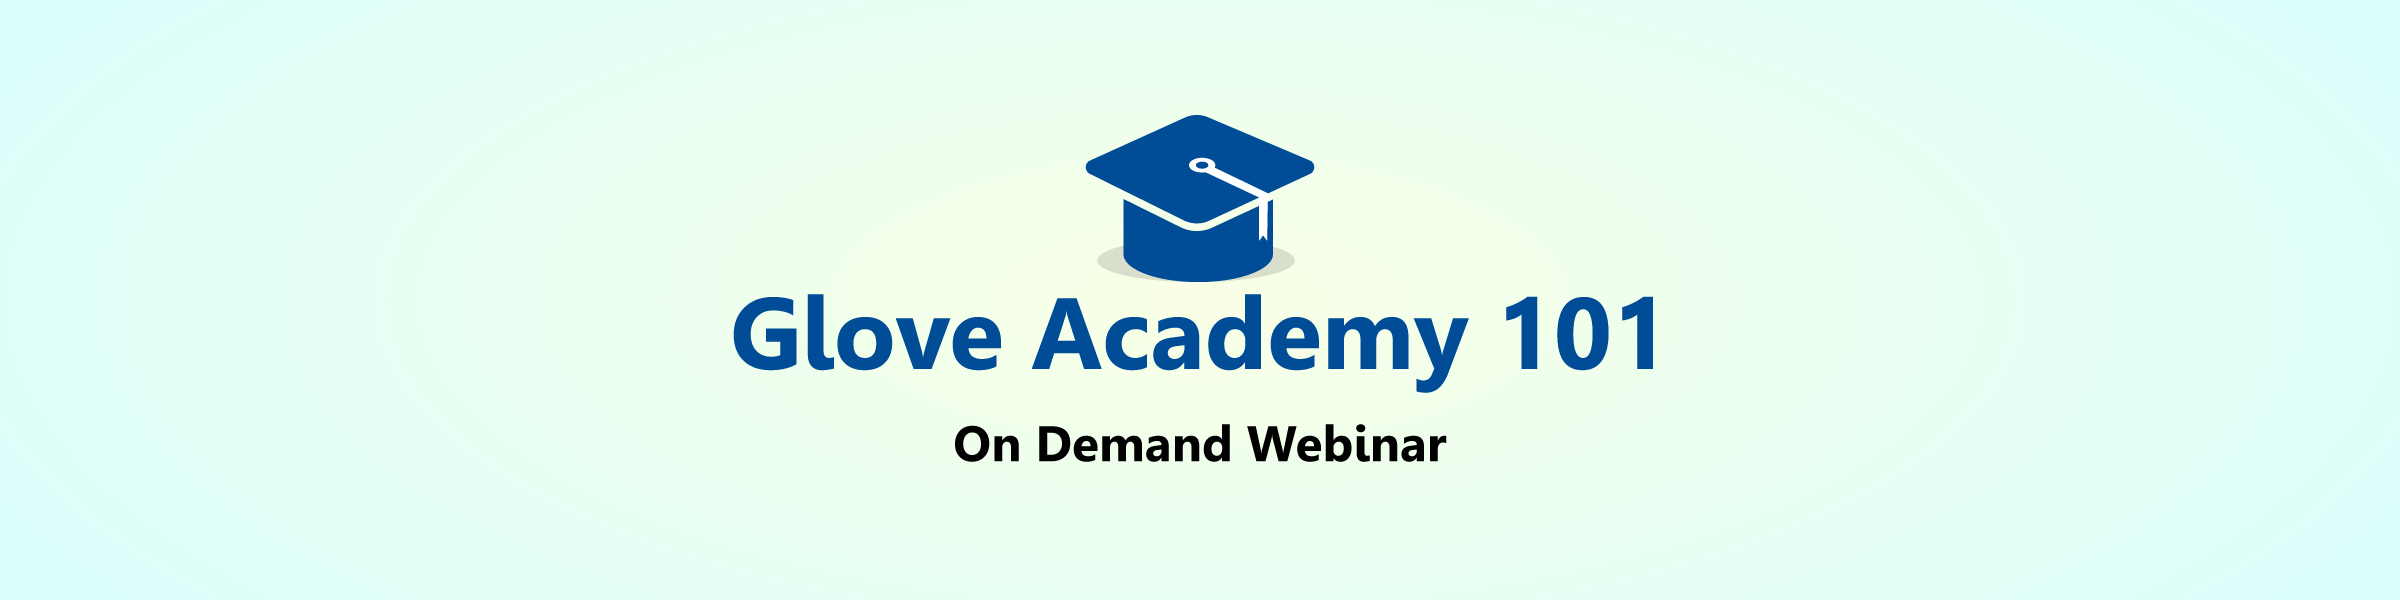 Glove Academy 101 on demand webinar